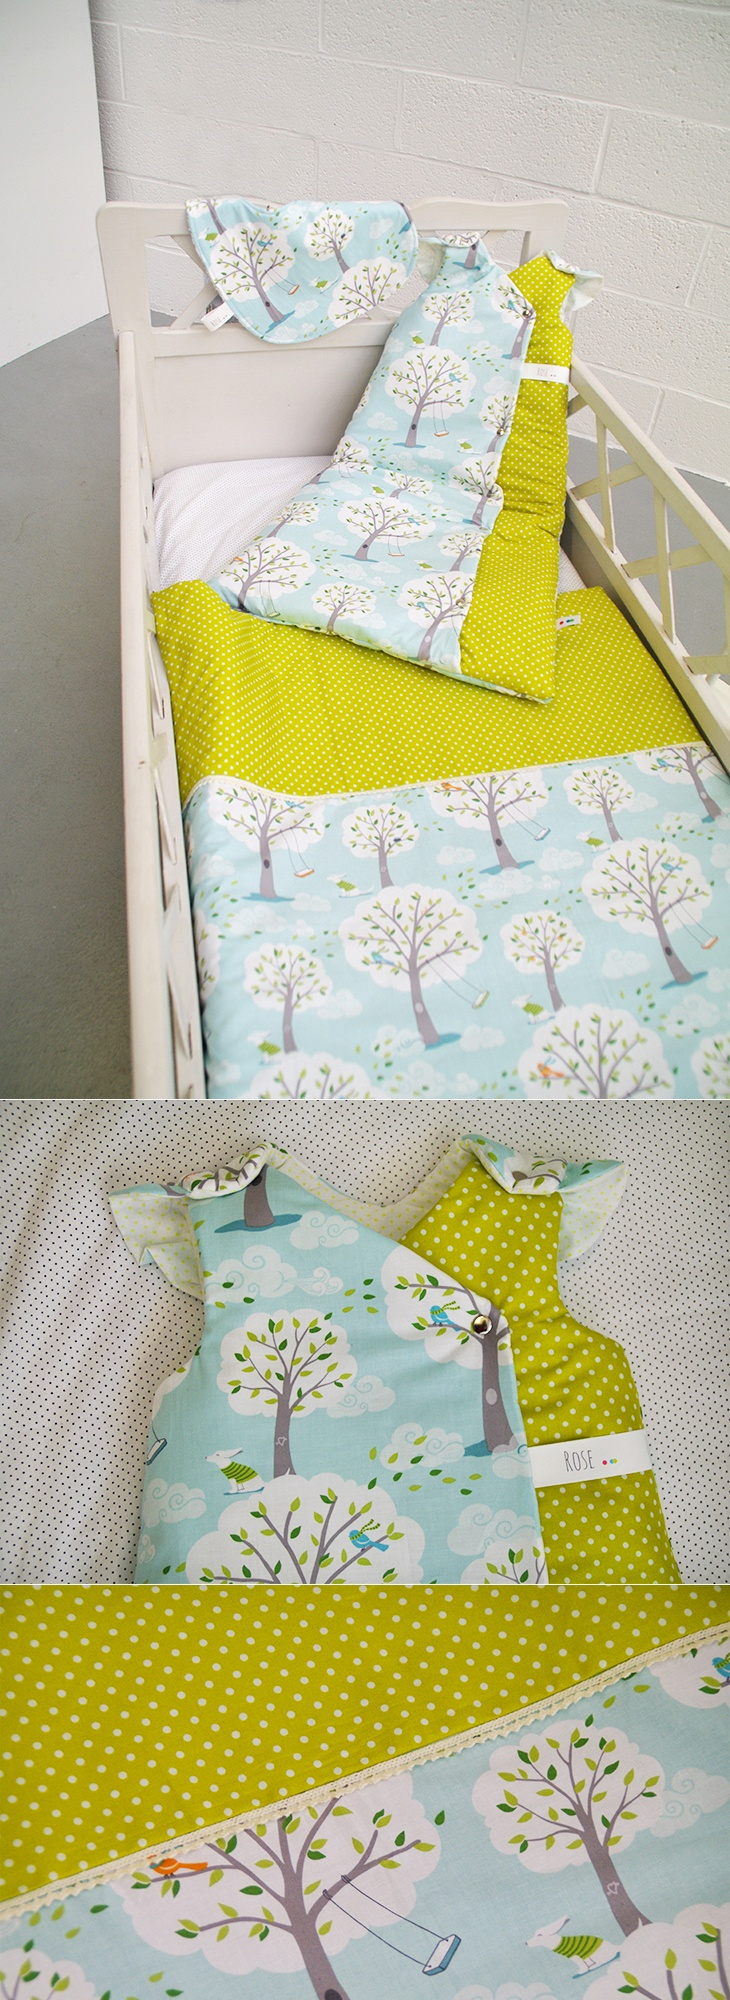 1000 Ideas About Baby Sleeping Bags On Pinterest